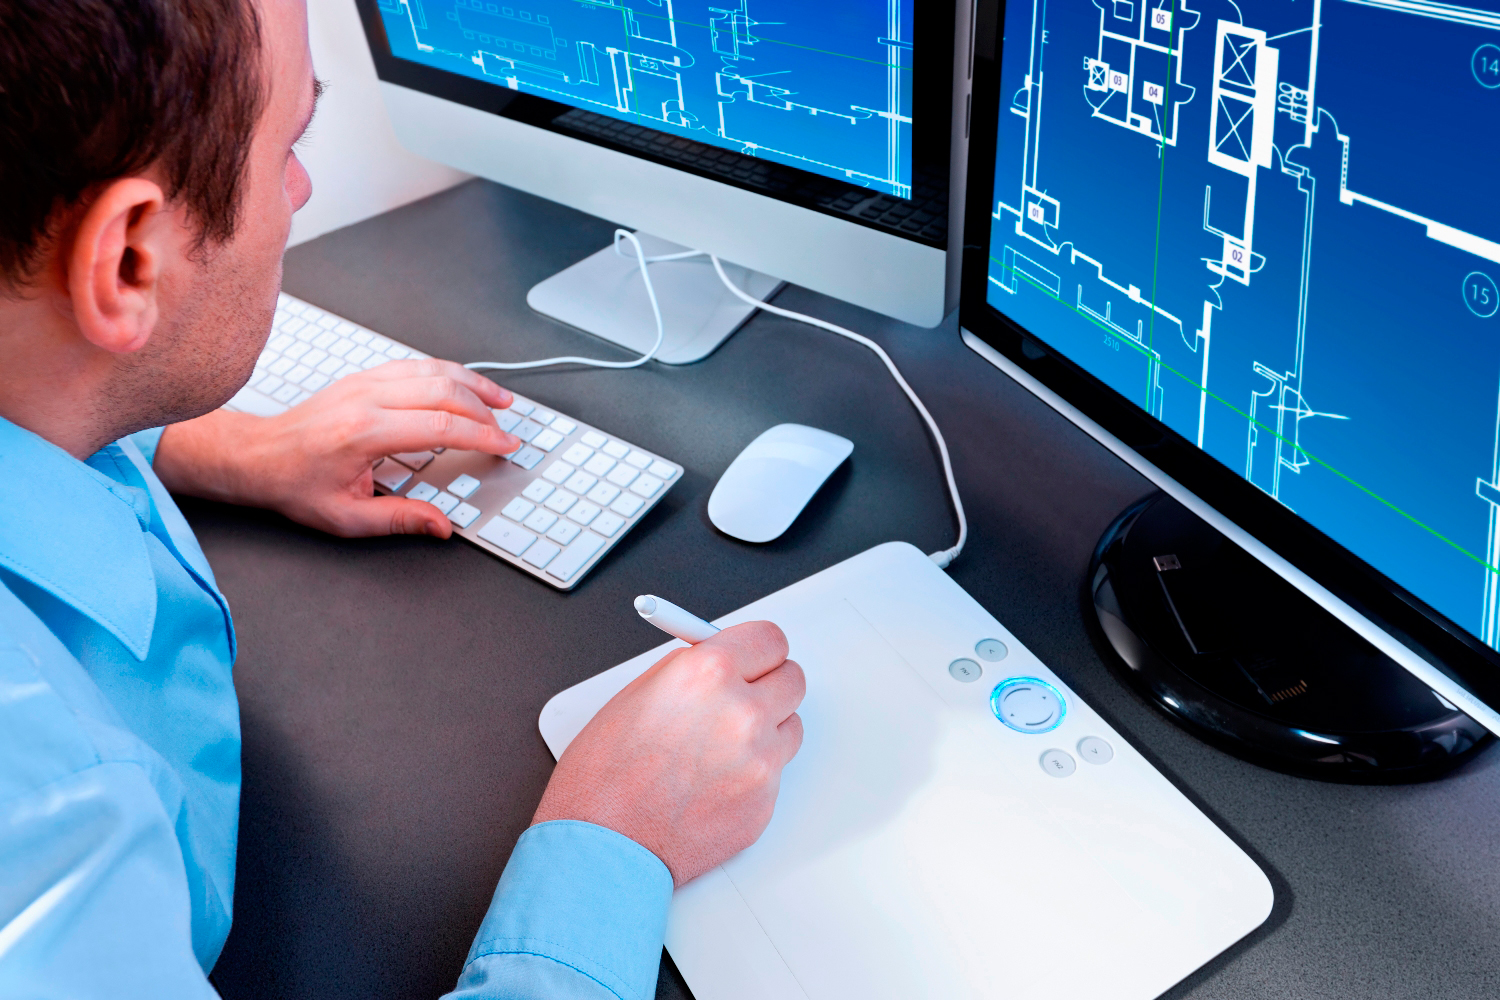 computer design engineering project thesis Huge list of computer science engineering cse projects 2015 source code free download, final year project for computer science and cse it design and analysis.